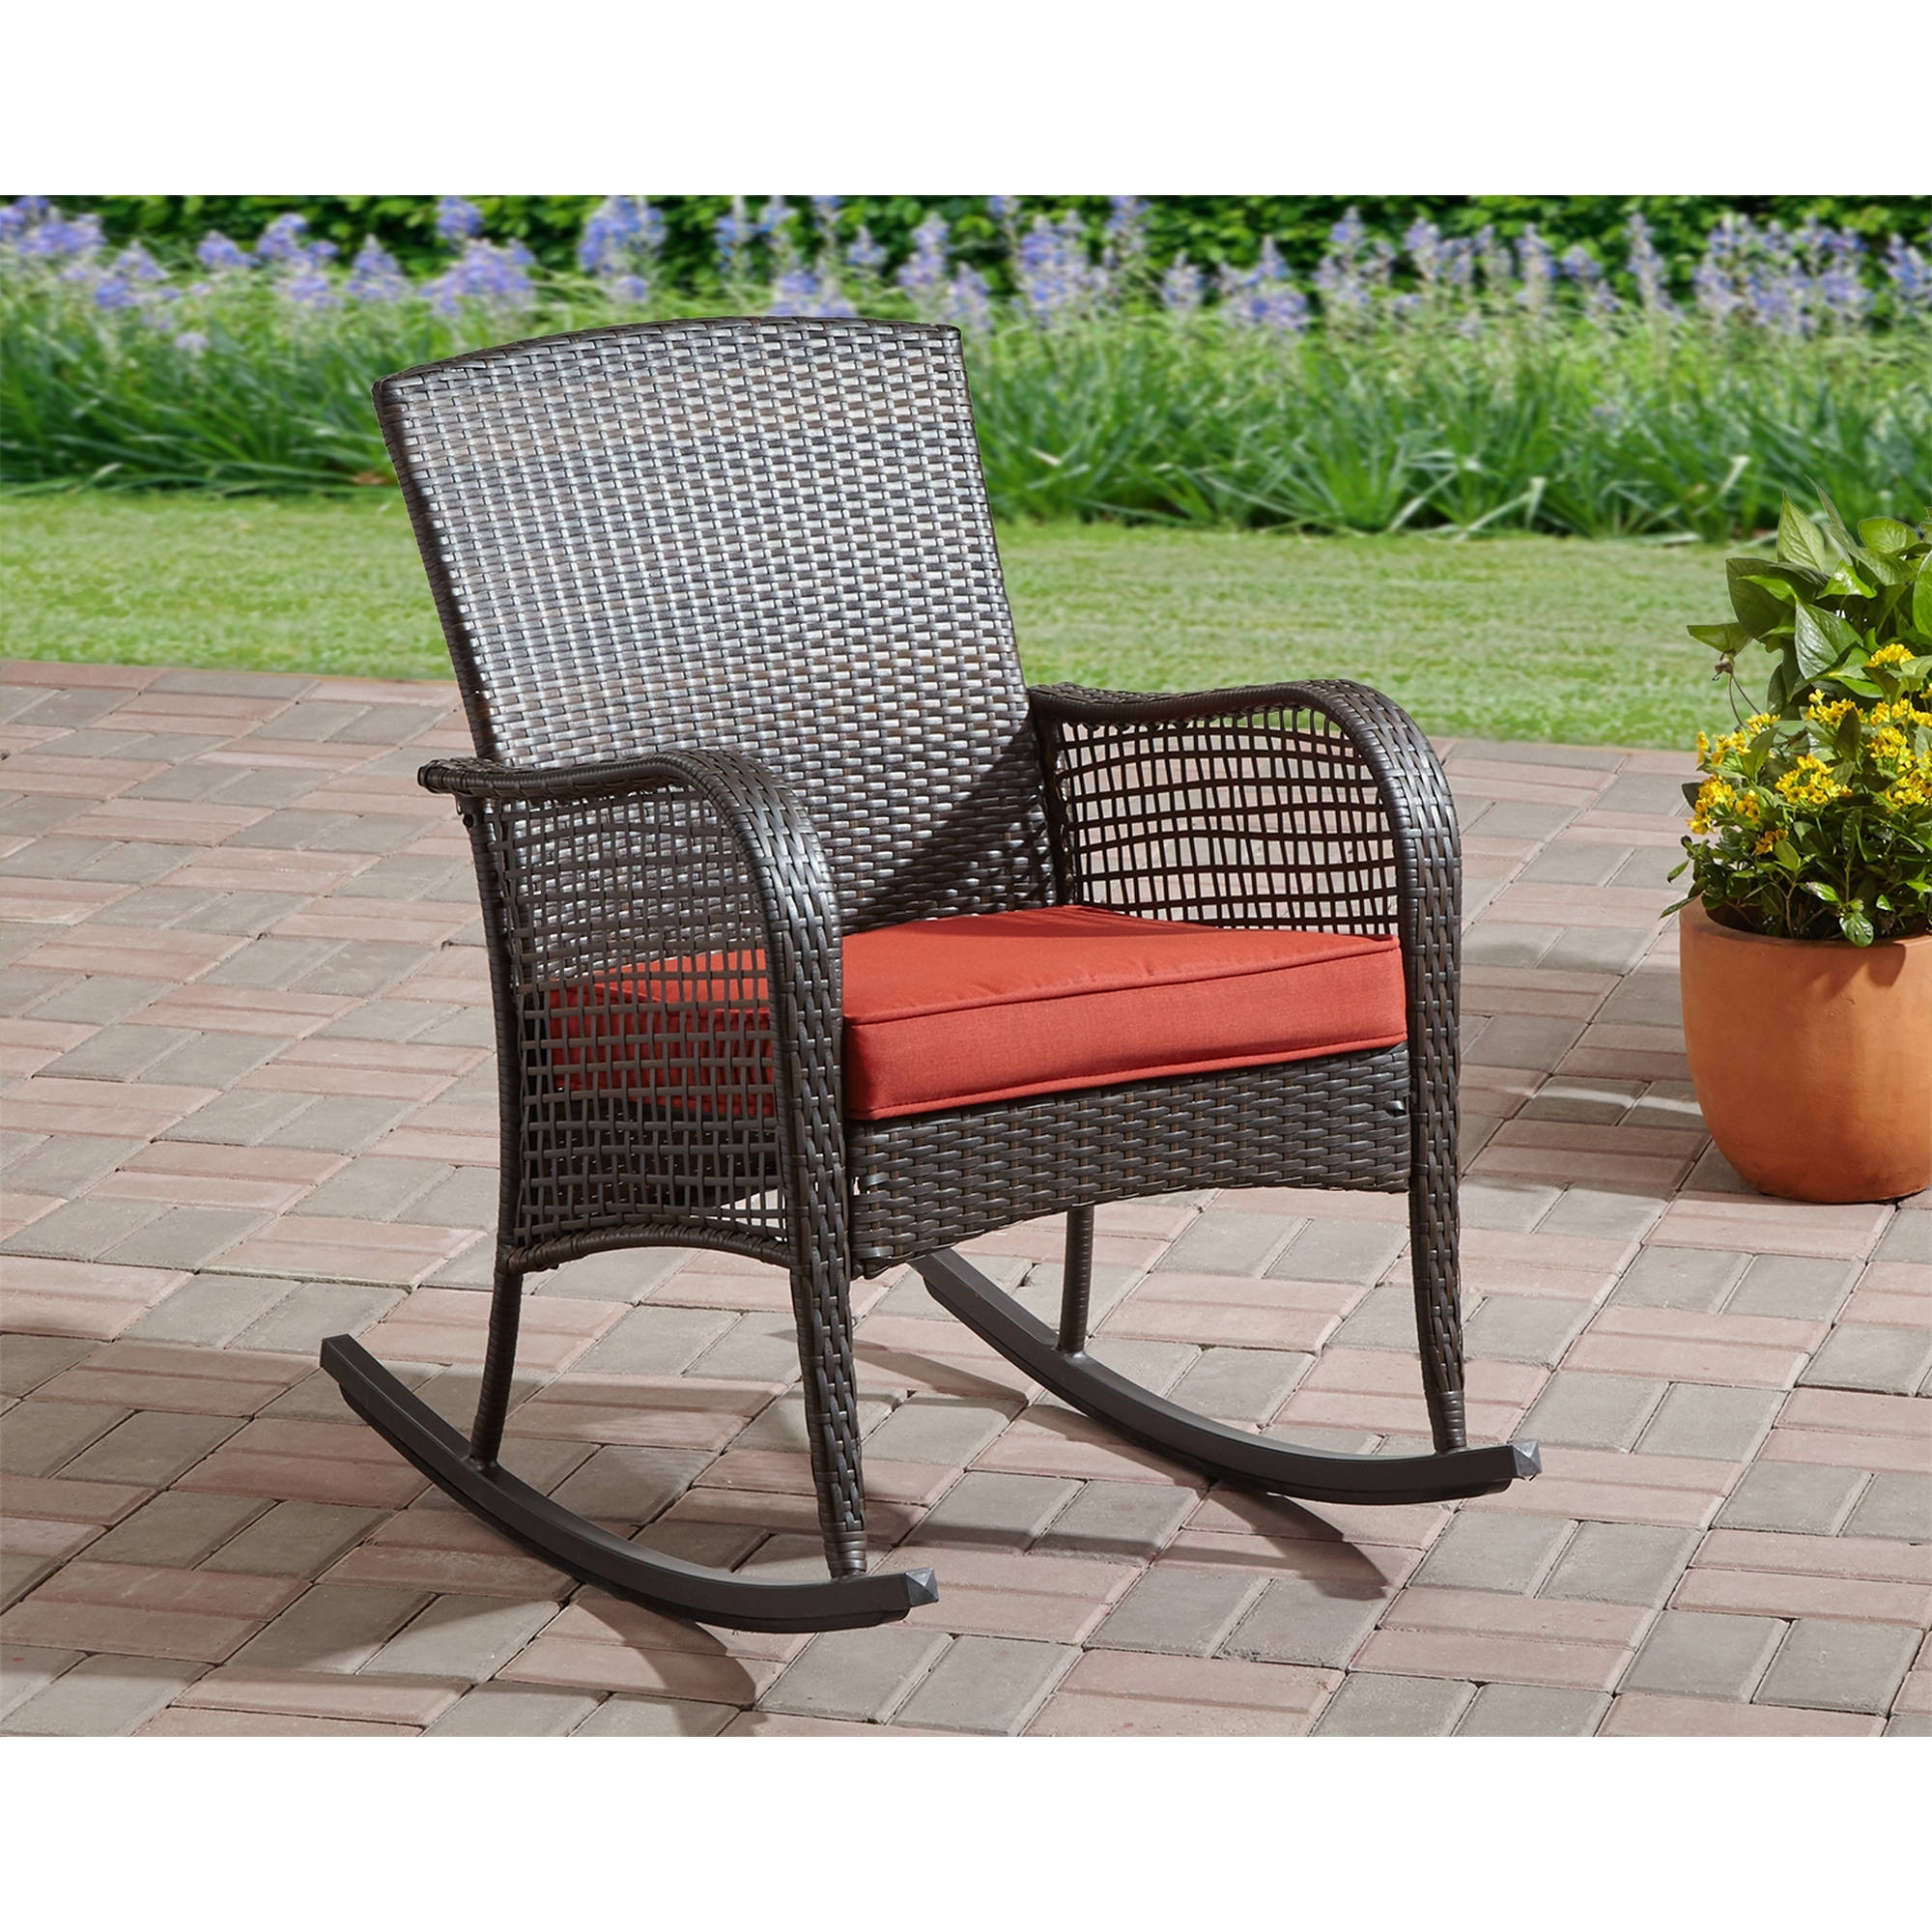 Rocking Chair Cushion Seat Wicker Steel Frame Outdoor Patio Deck In Red Patio Rocking Chairs (View 12 of 15)